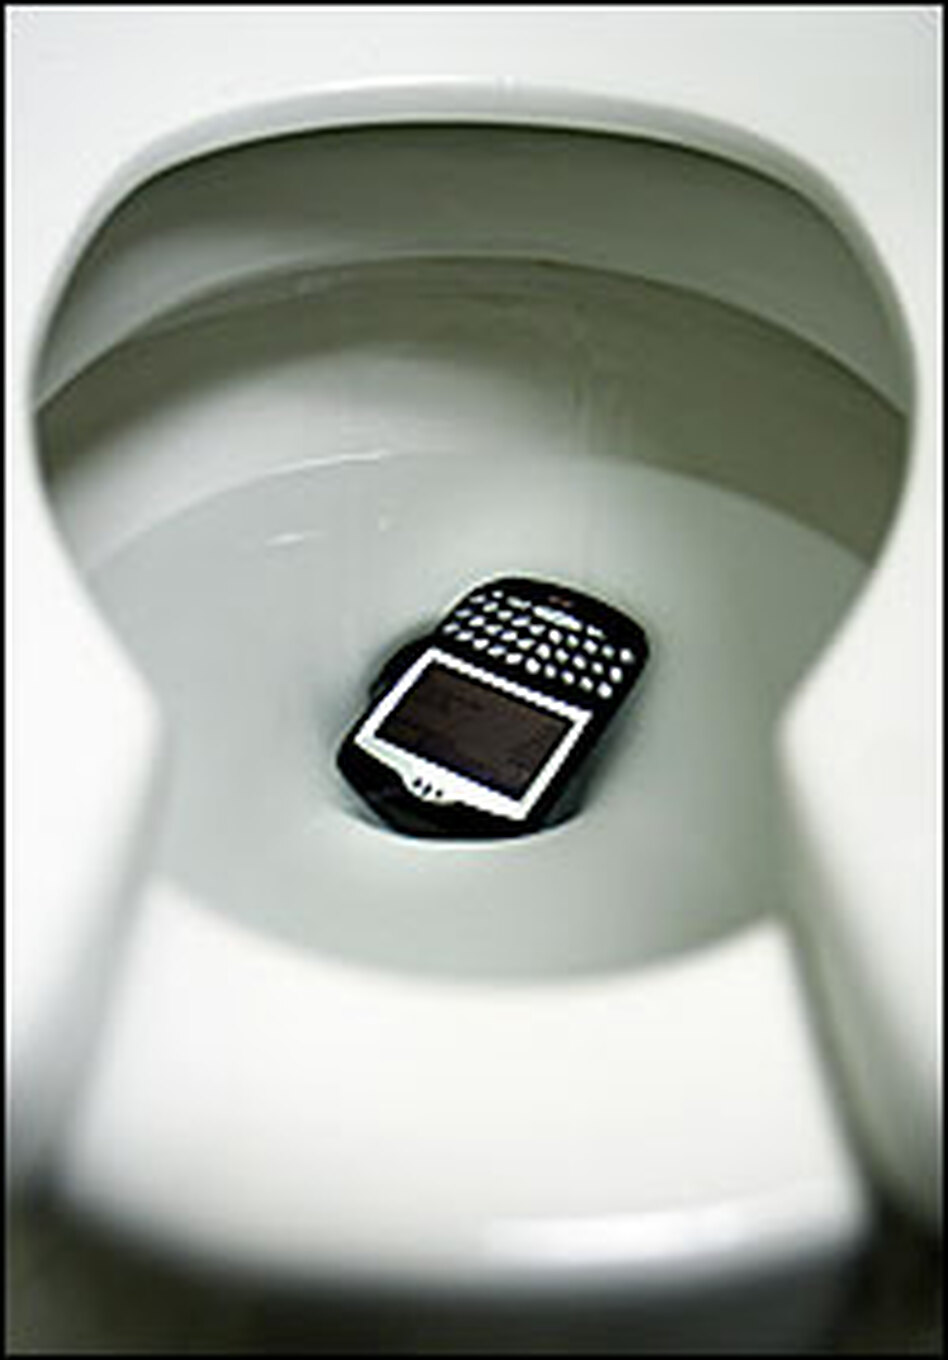 When a BlackBerry or cell phone inadvertently takes a dive, that sinking feeling follows.